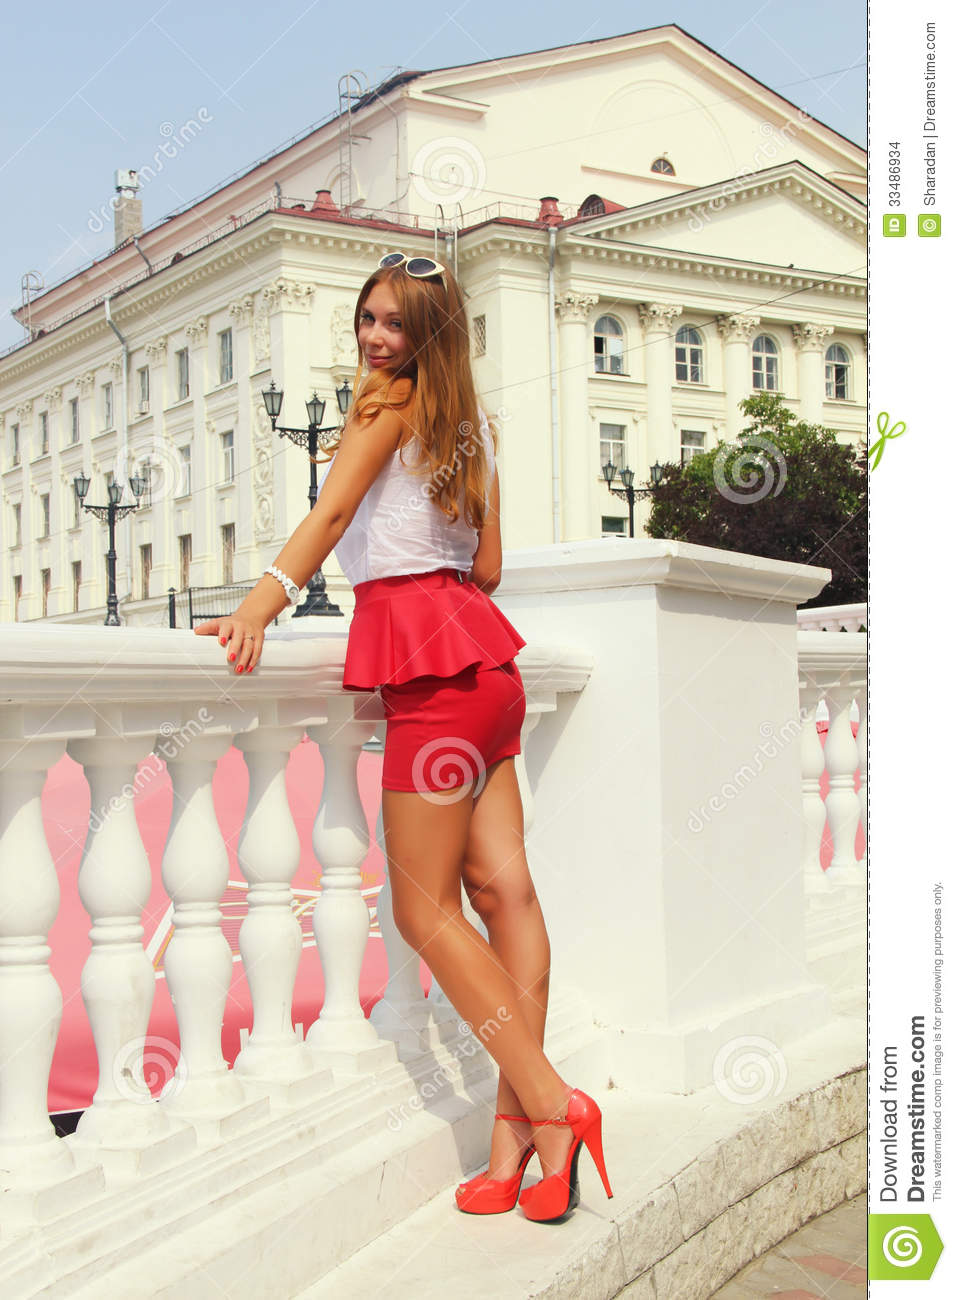 red_shoes-2.jpg?t=1302893821